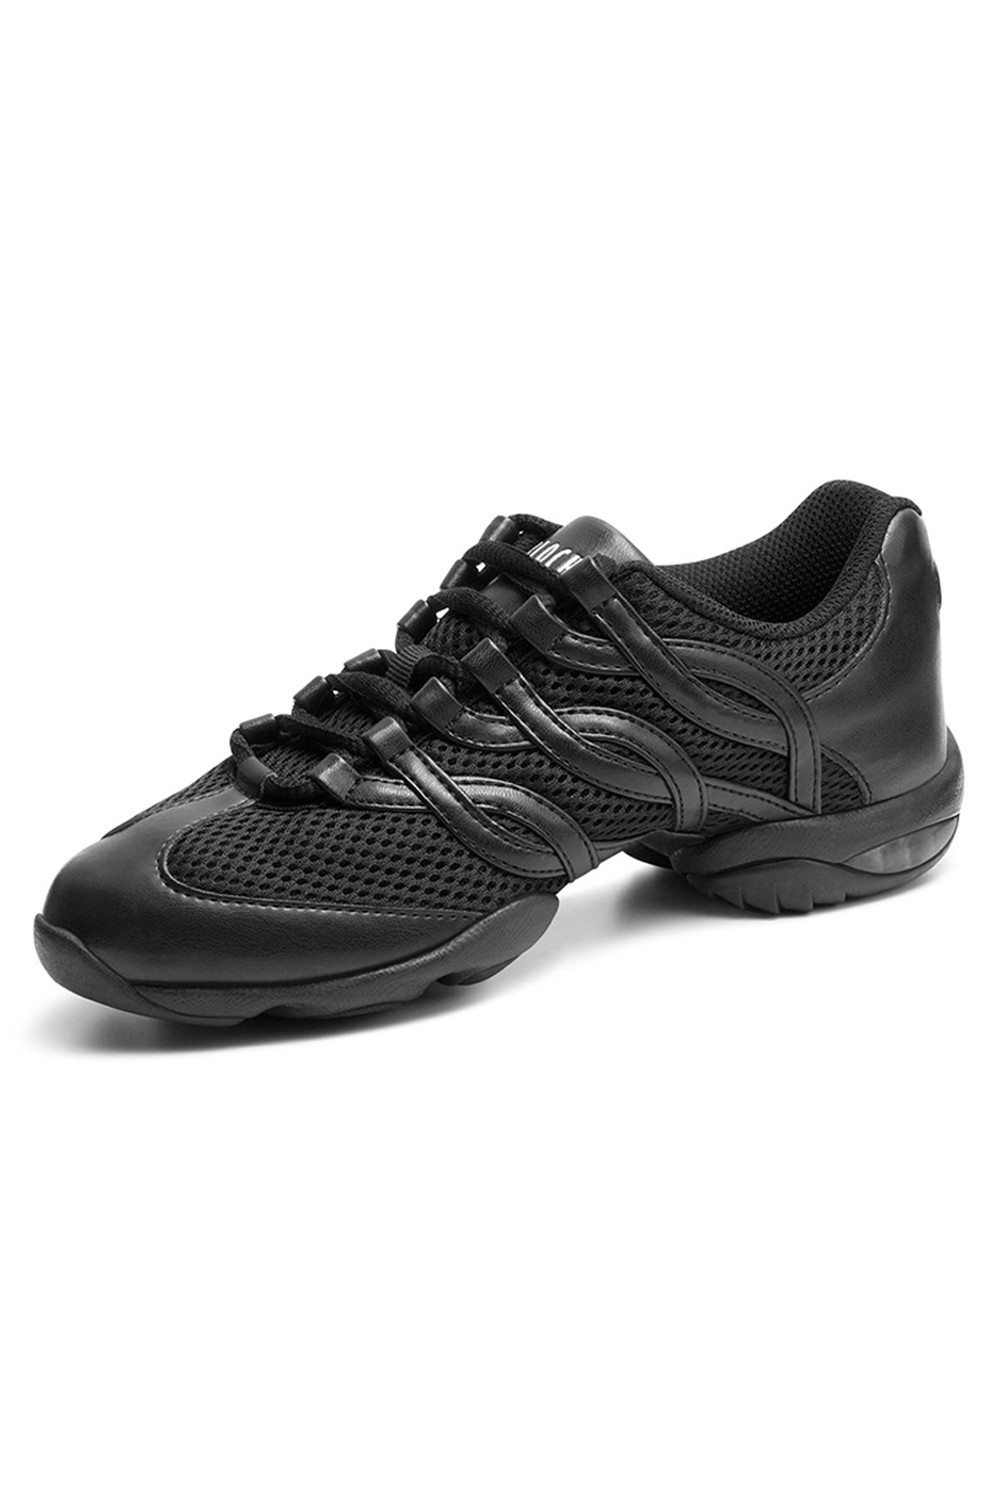 Twist - Homme Men's Dance Sneakers